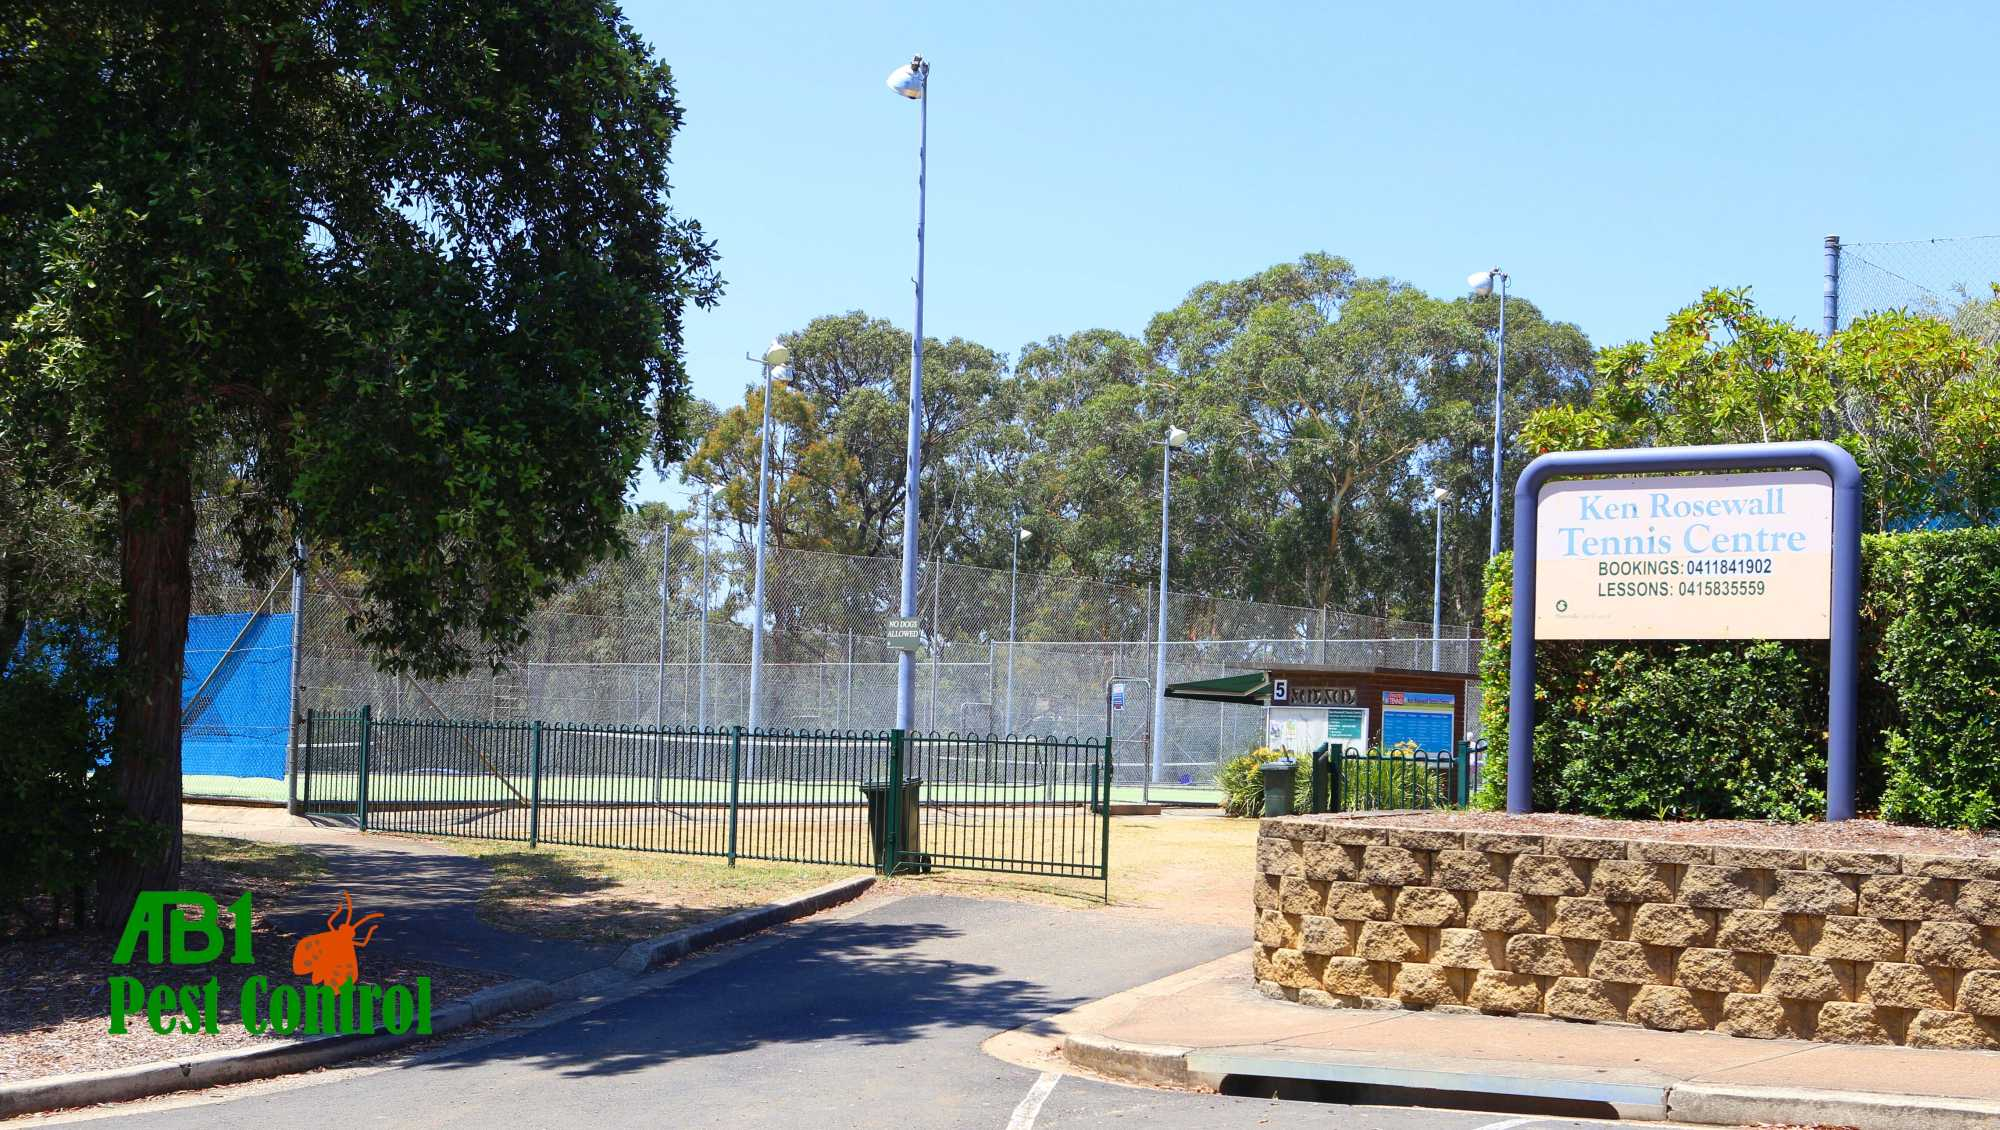 Ken Rosewall Tennis Courts Mortdale